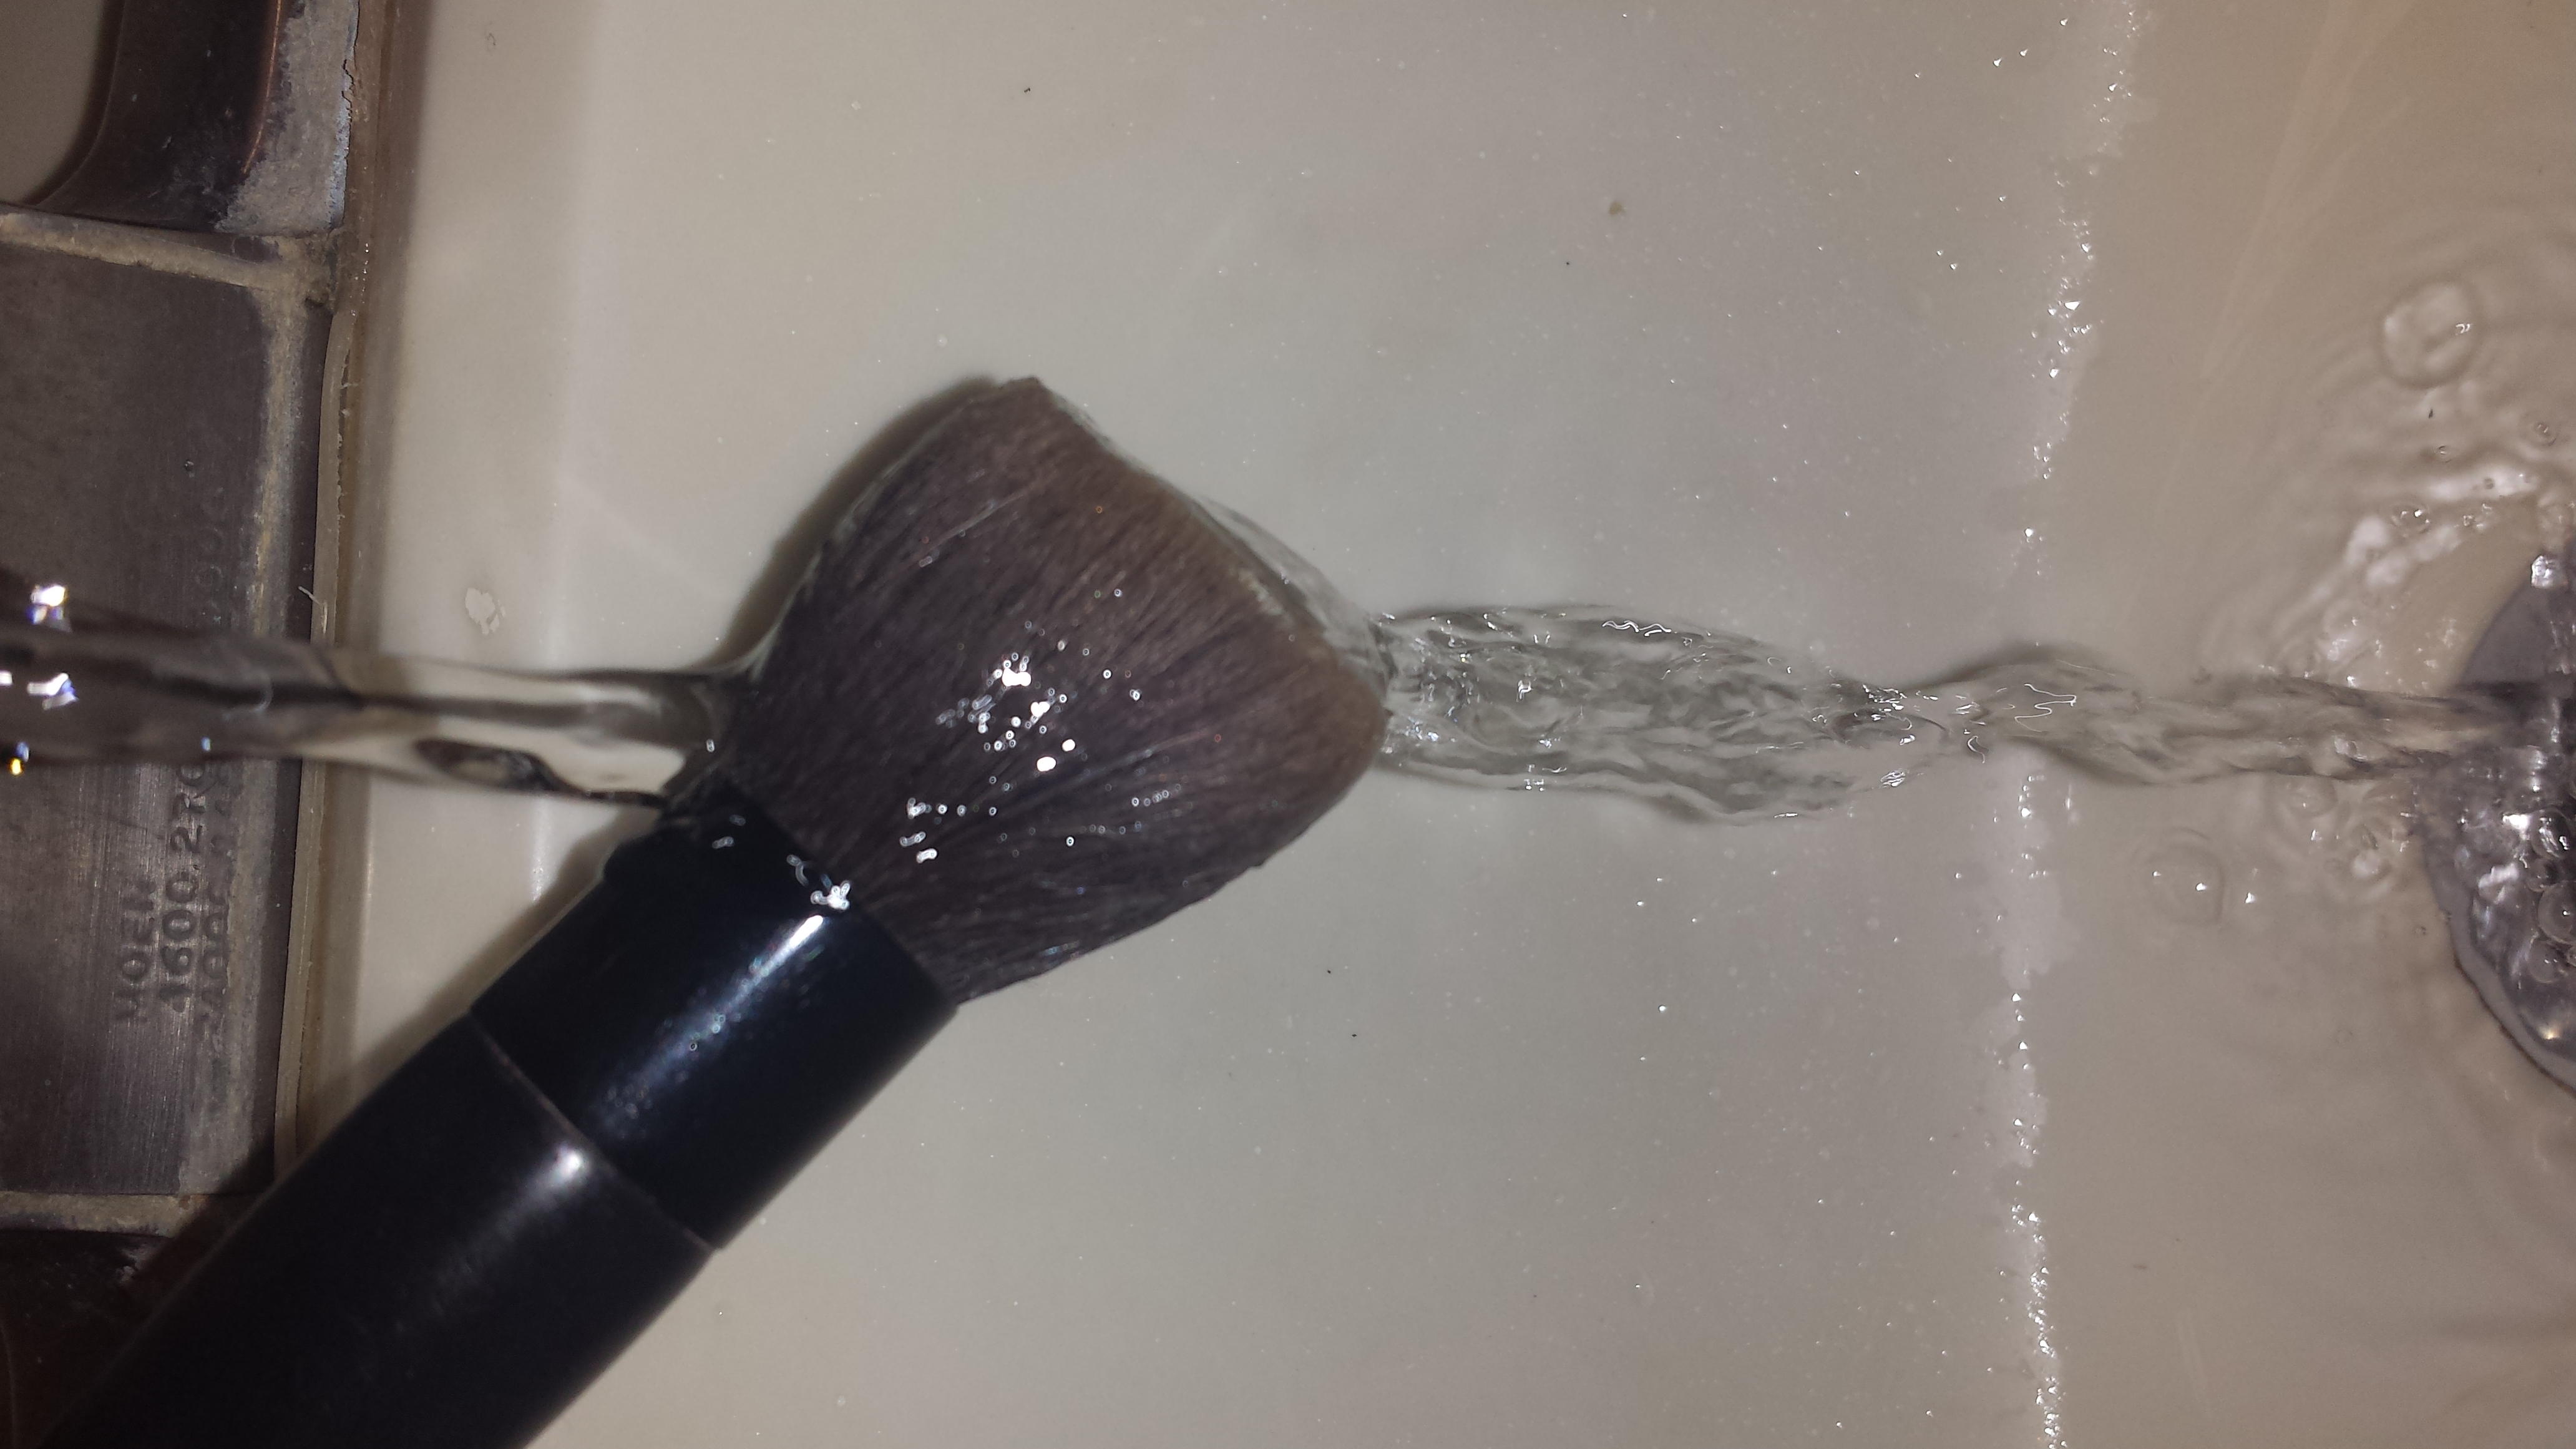 First wet your makeup brushes